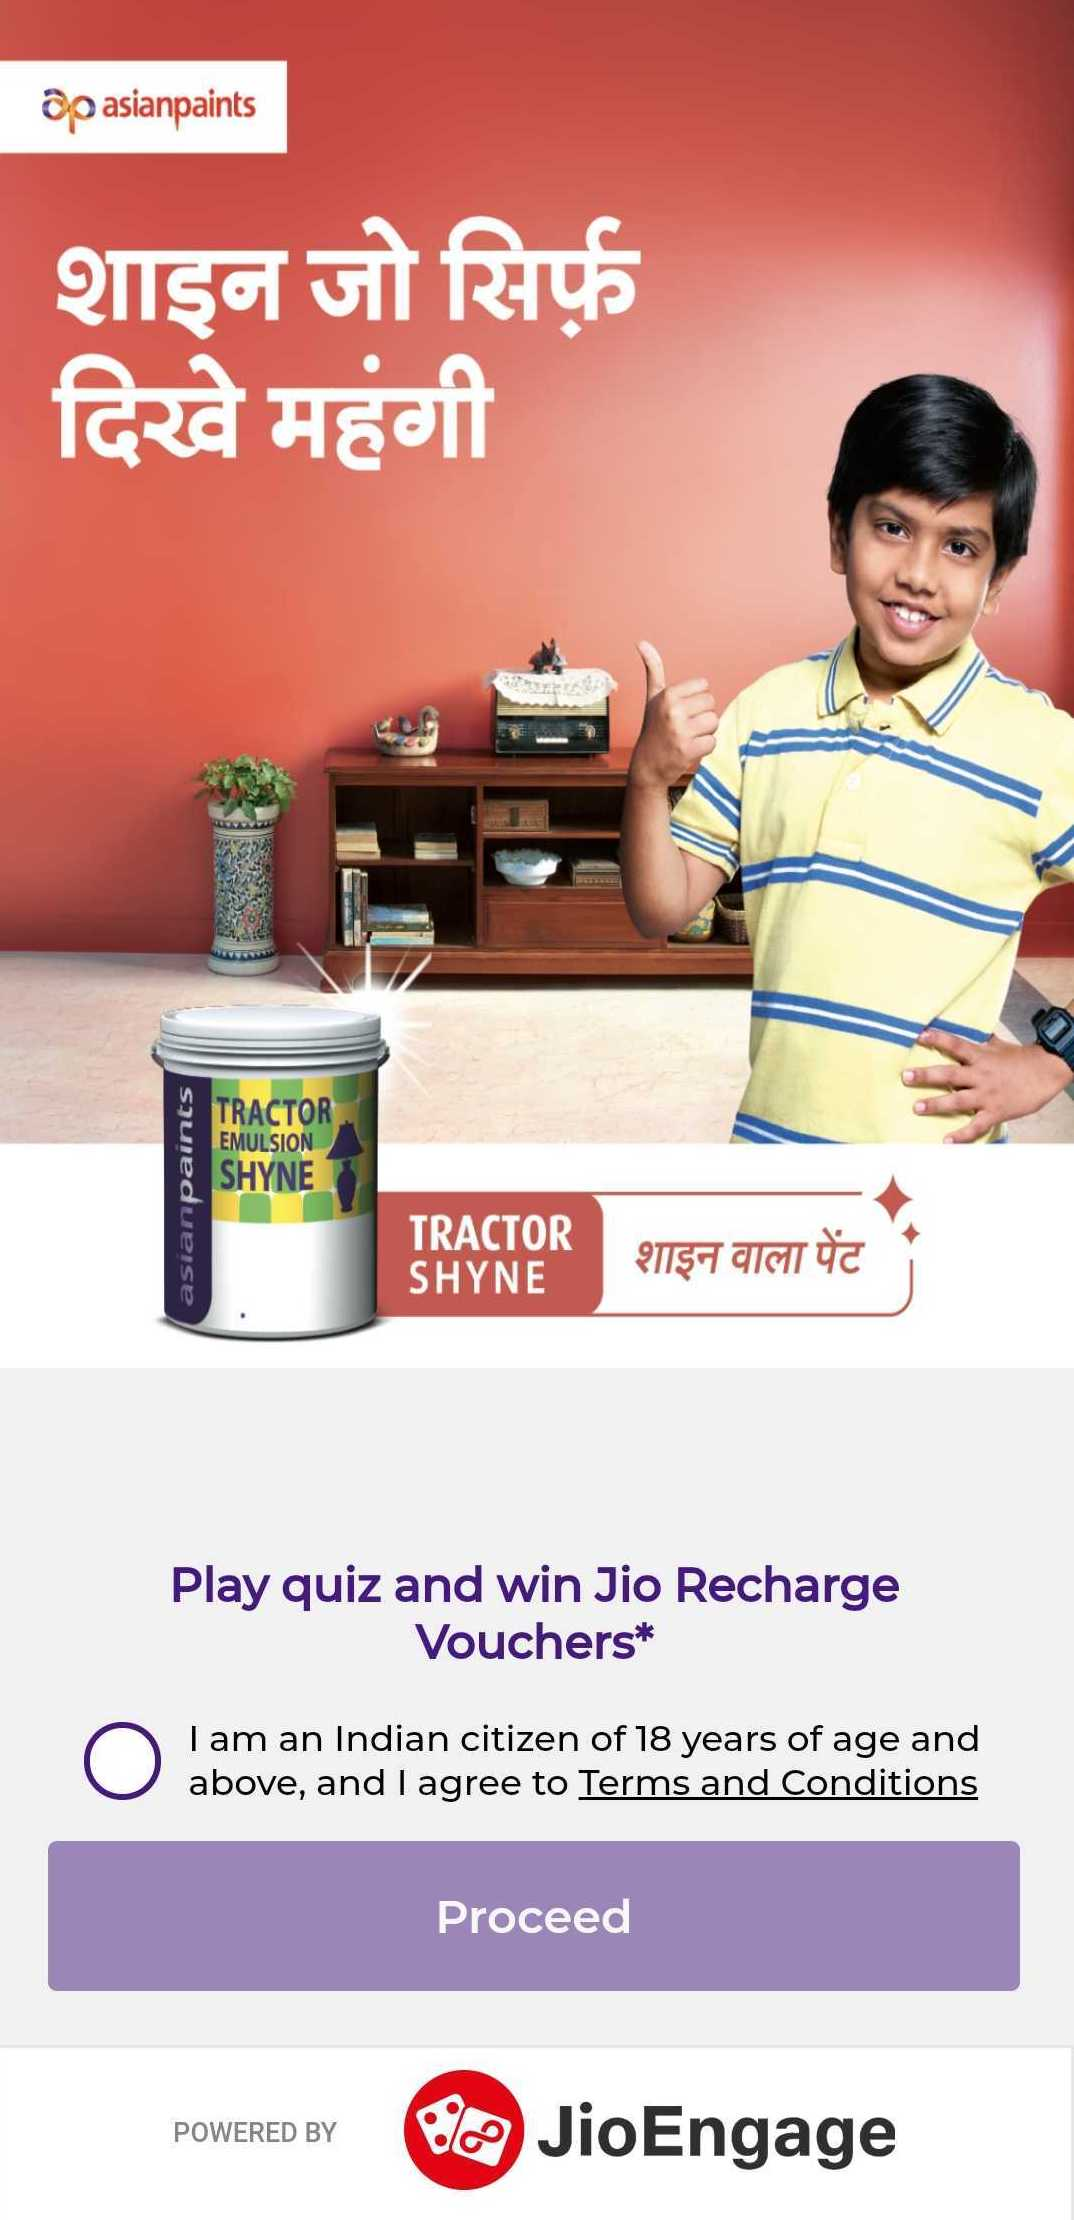 Jio Asian Paints campaign is offering Jio recharge vouchers worth Rs 199